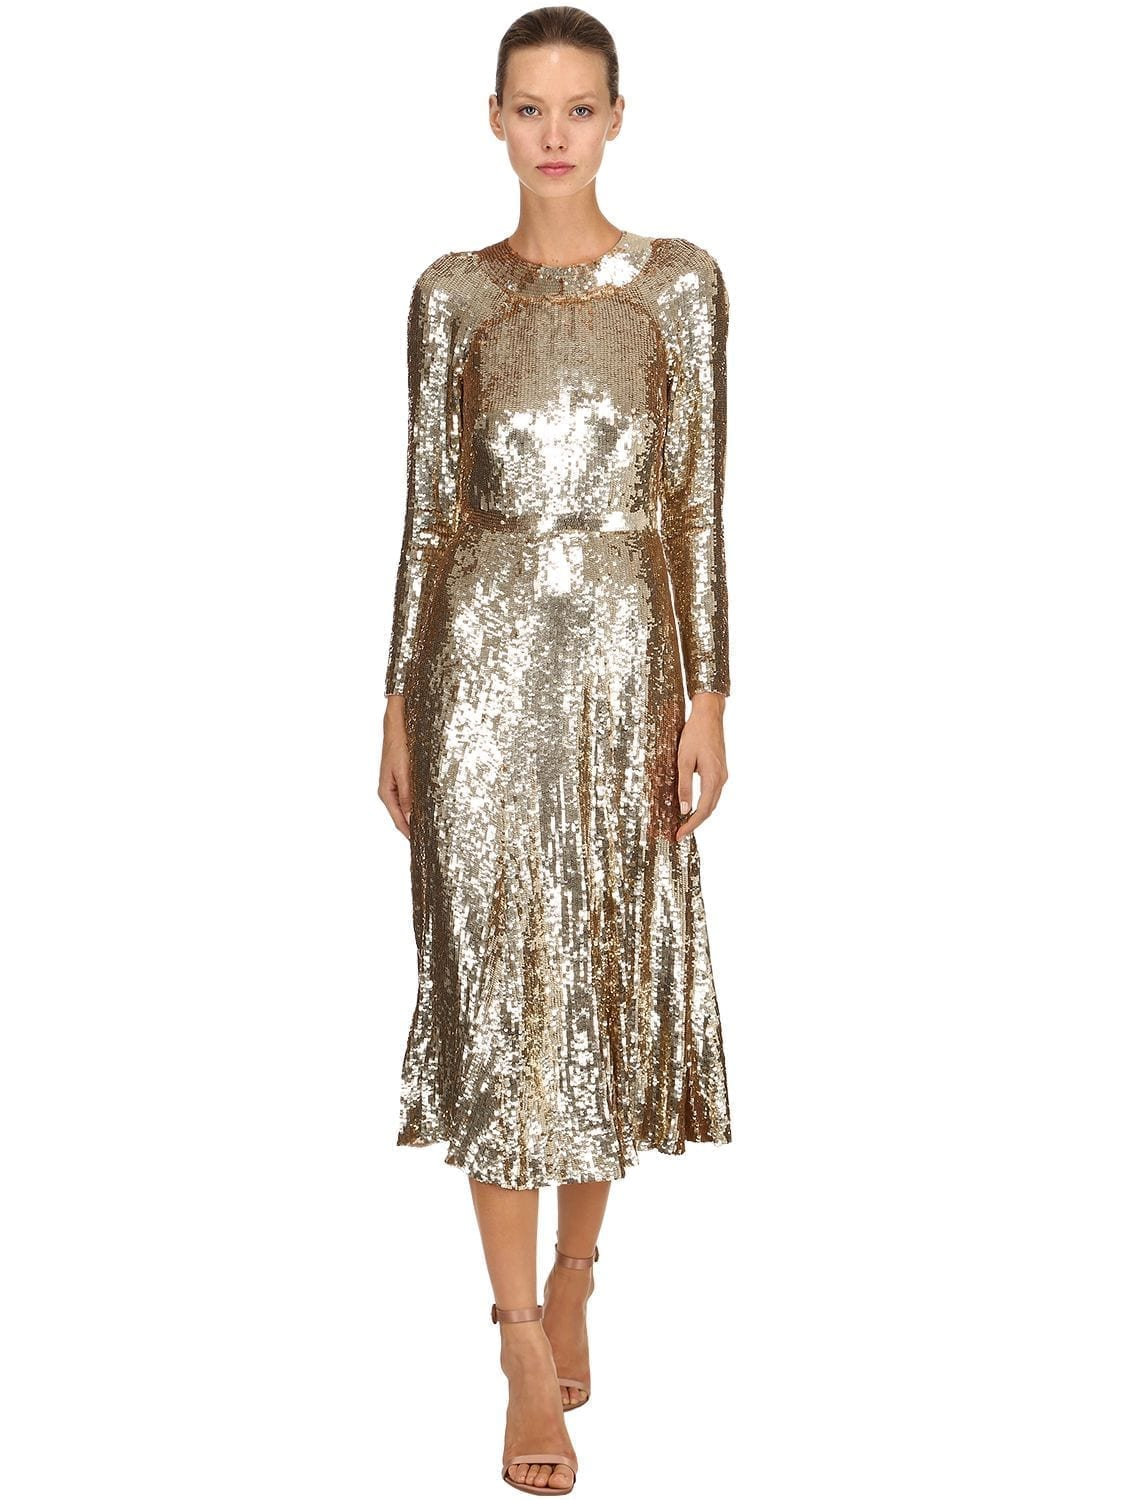 TEMPERLEY LONDON Sequined Midi Gold Dress - We Select Dresses